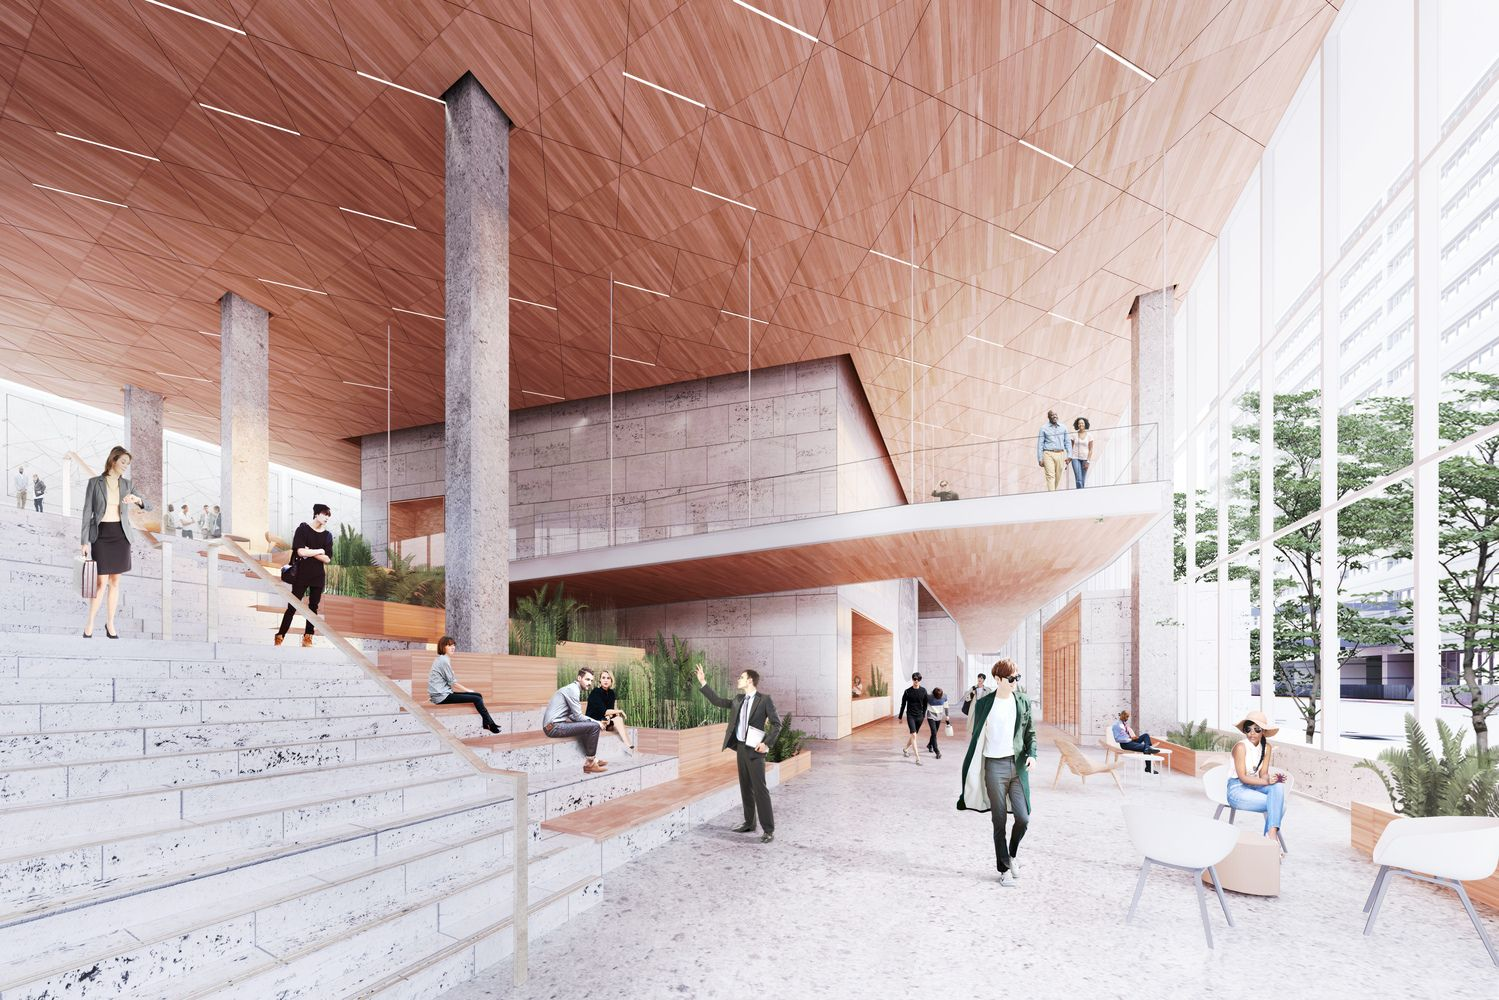 Gallery Of Henning Larsen Brings A Scandinavian Design Approach To The City Of Minneapolis Scandinavian Architecture Henning Larsen Architecture Presentation